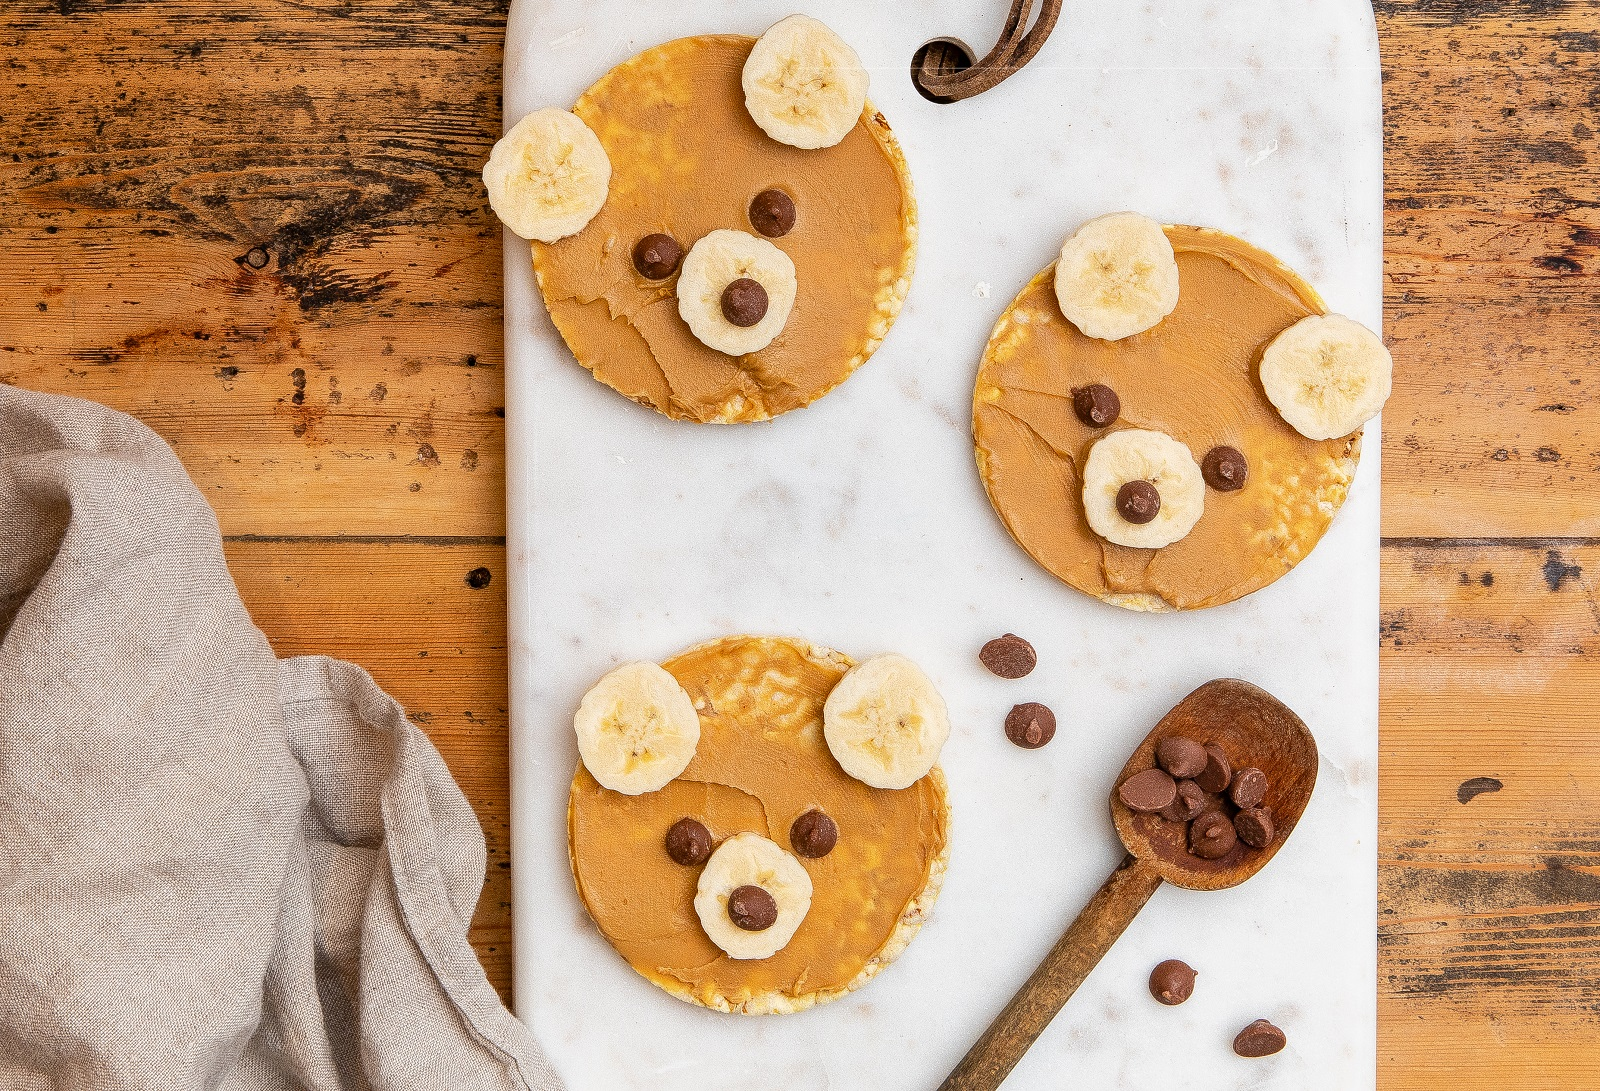 Fun Teddy Bears made from CORN THINS slices, banana, choc chips & nut butter